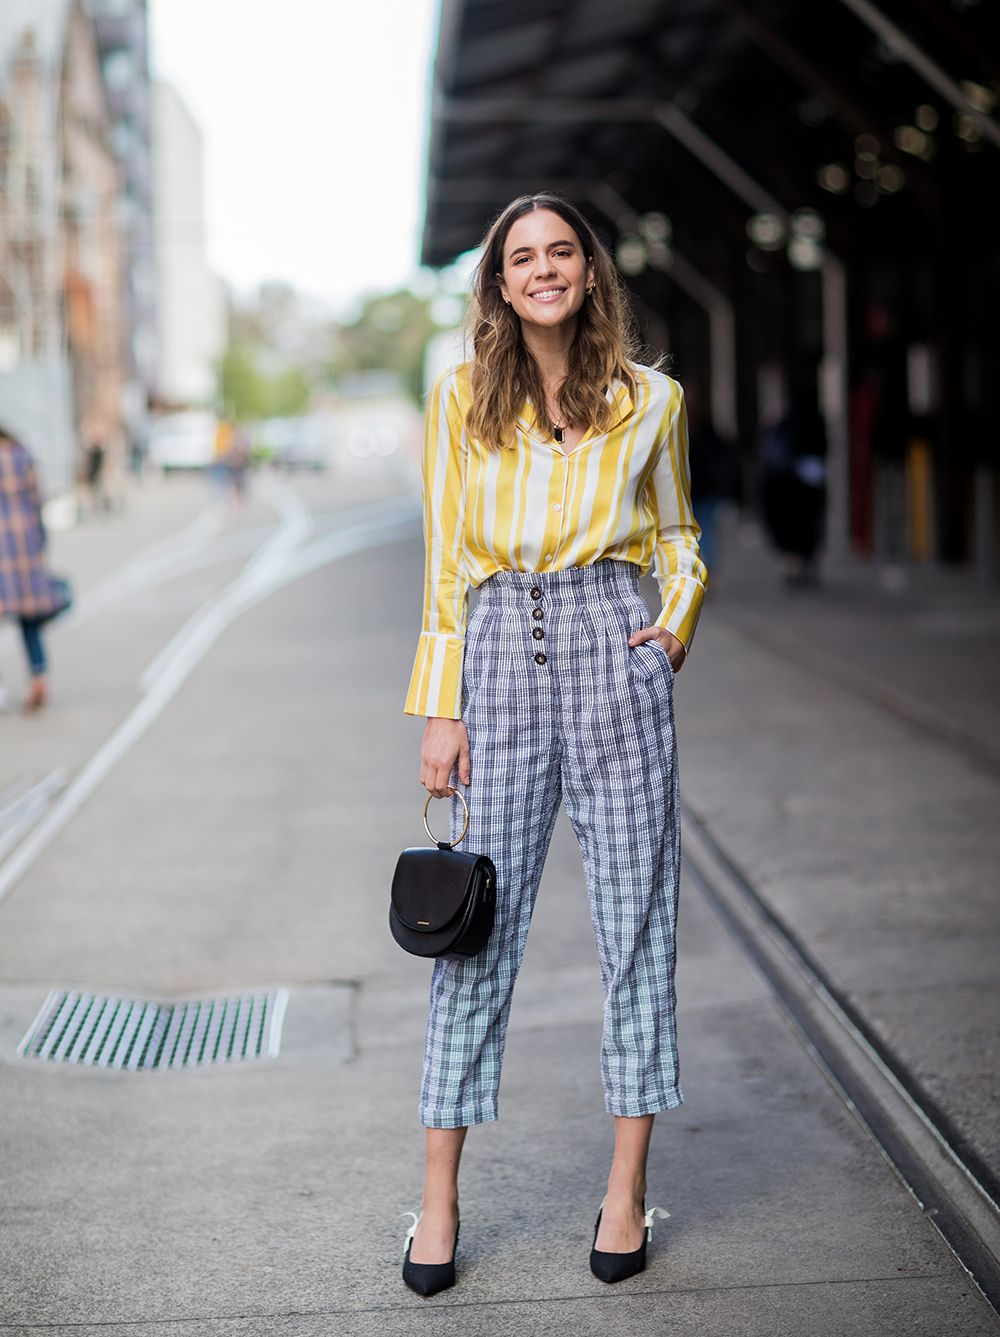 Discussion on this topic: Street Style Guide to Summer Work Attire, street-style-guide-to-summer-work-attire/